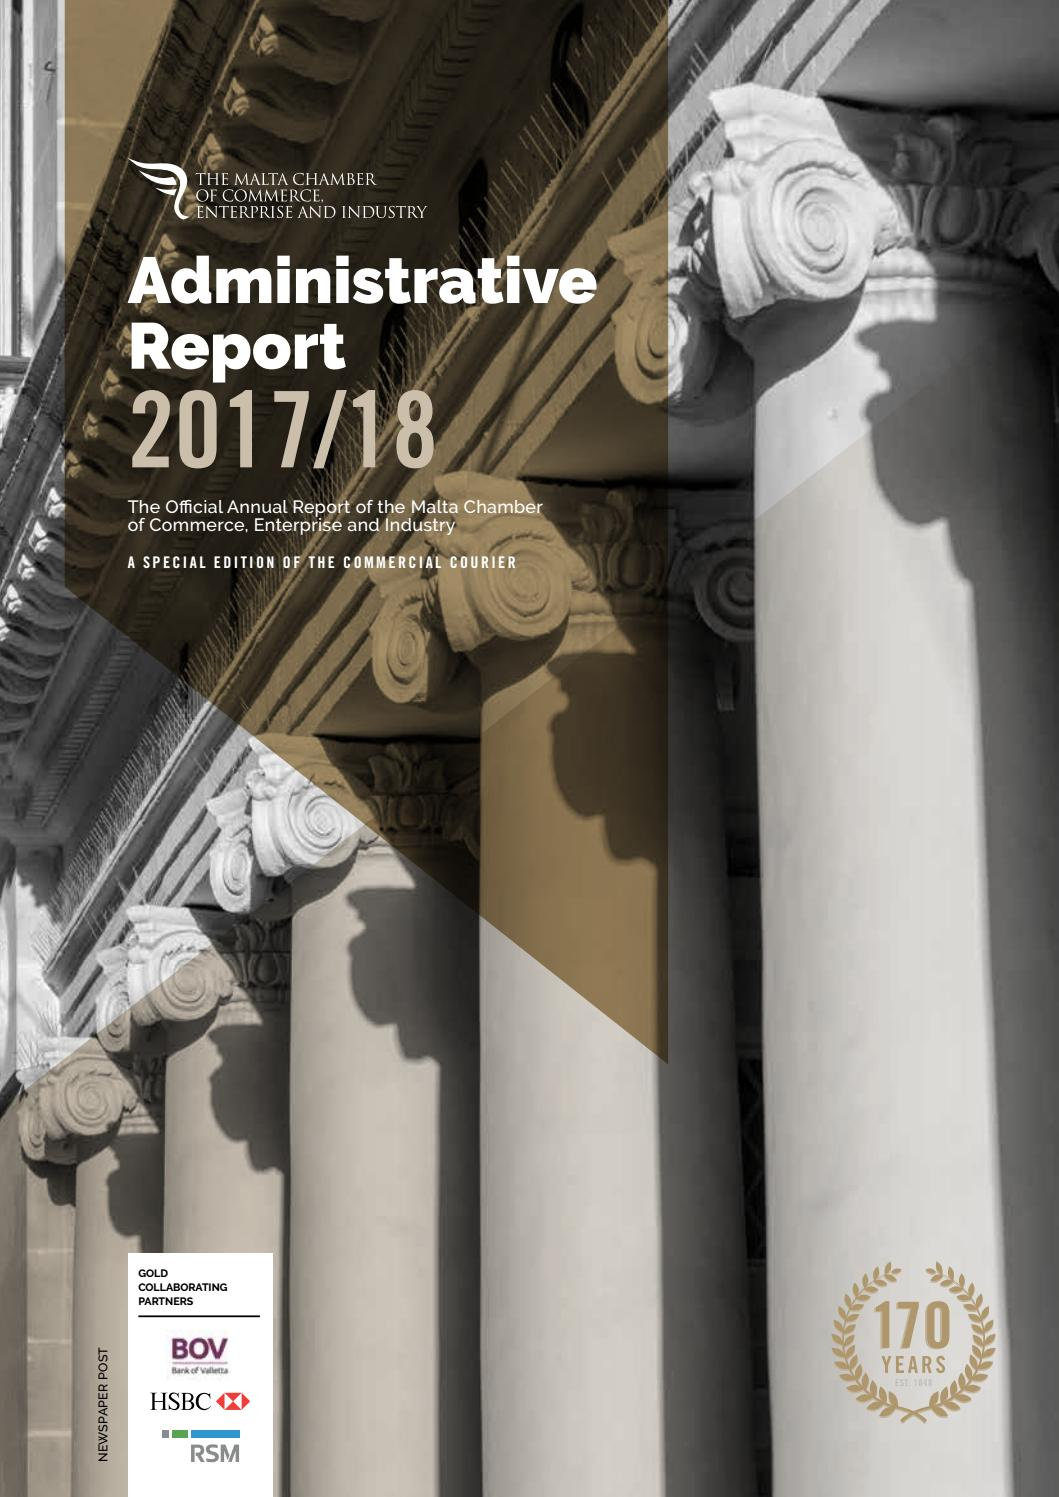 Malta Chamber Administrative Report 2017/2018 by Content House Group